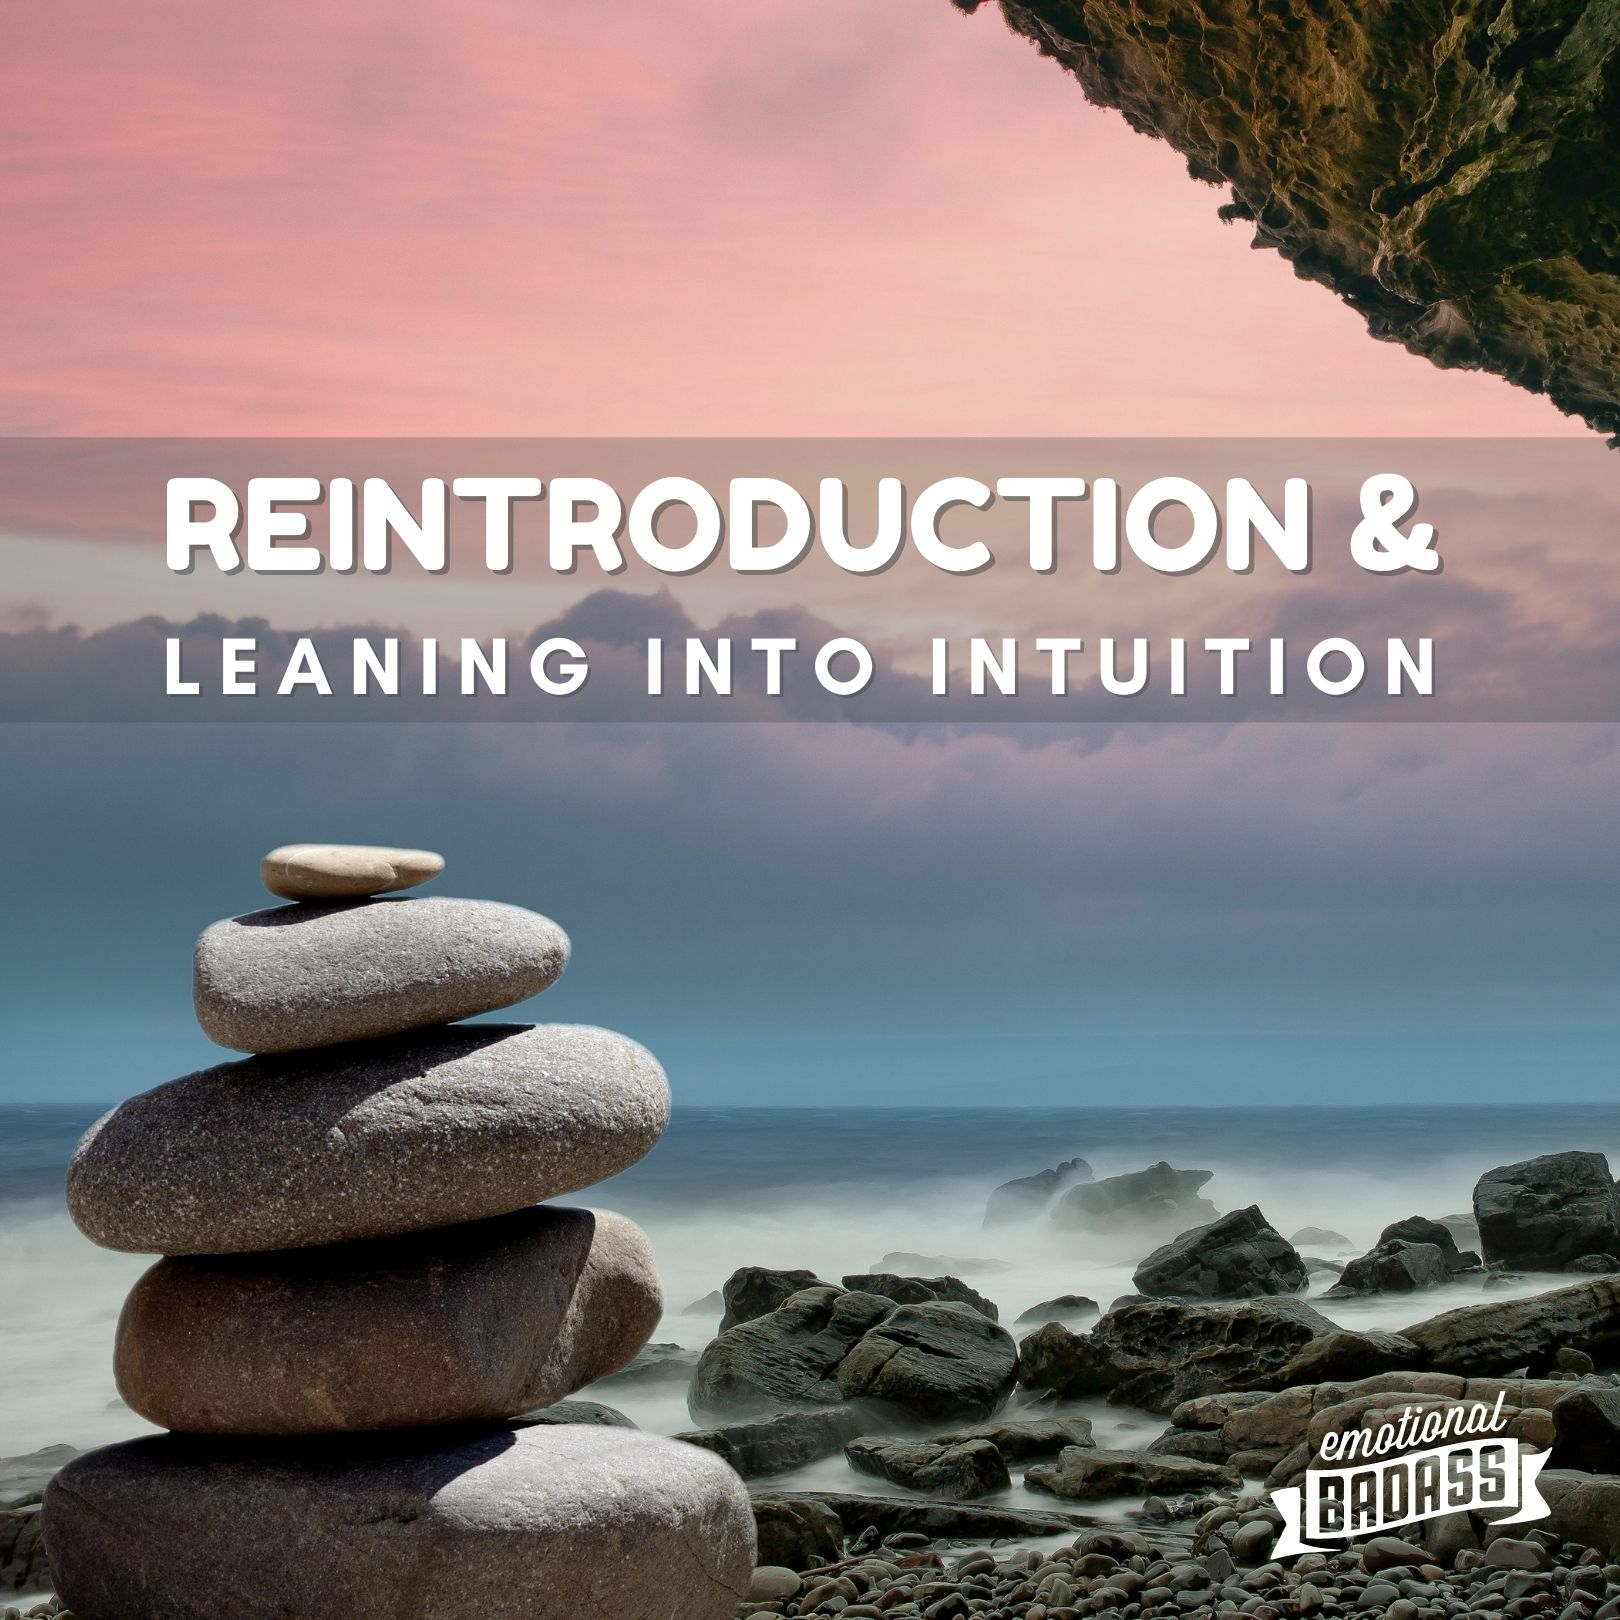 Reintroduction, Healing, Learning and Leaning into intuition